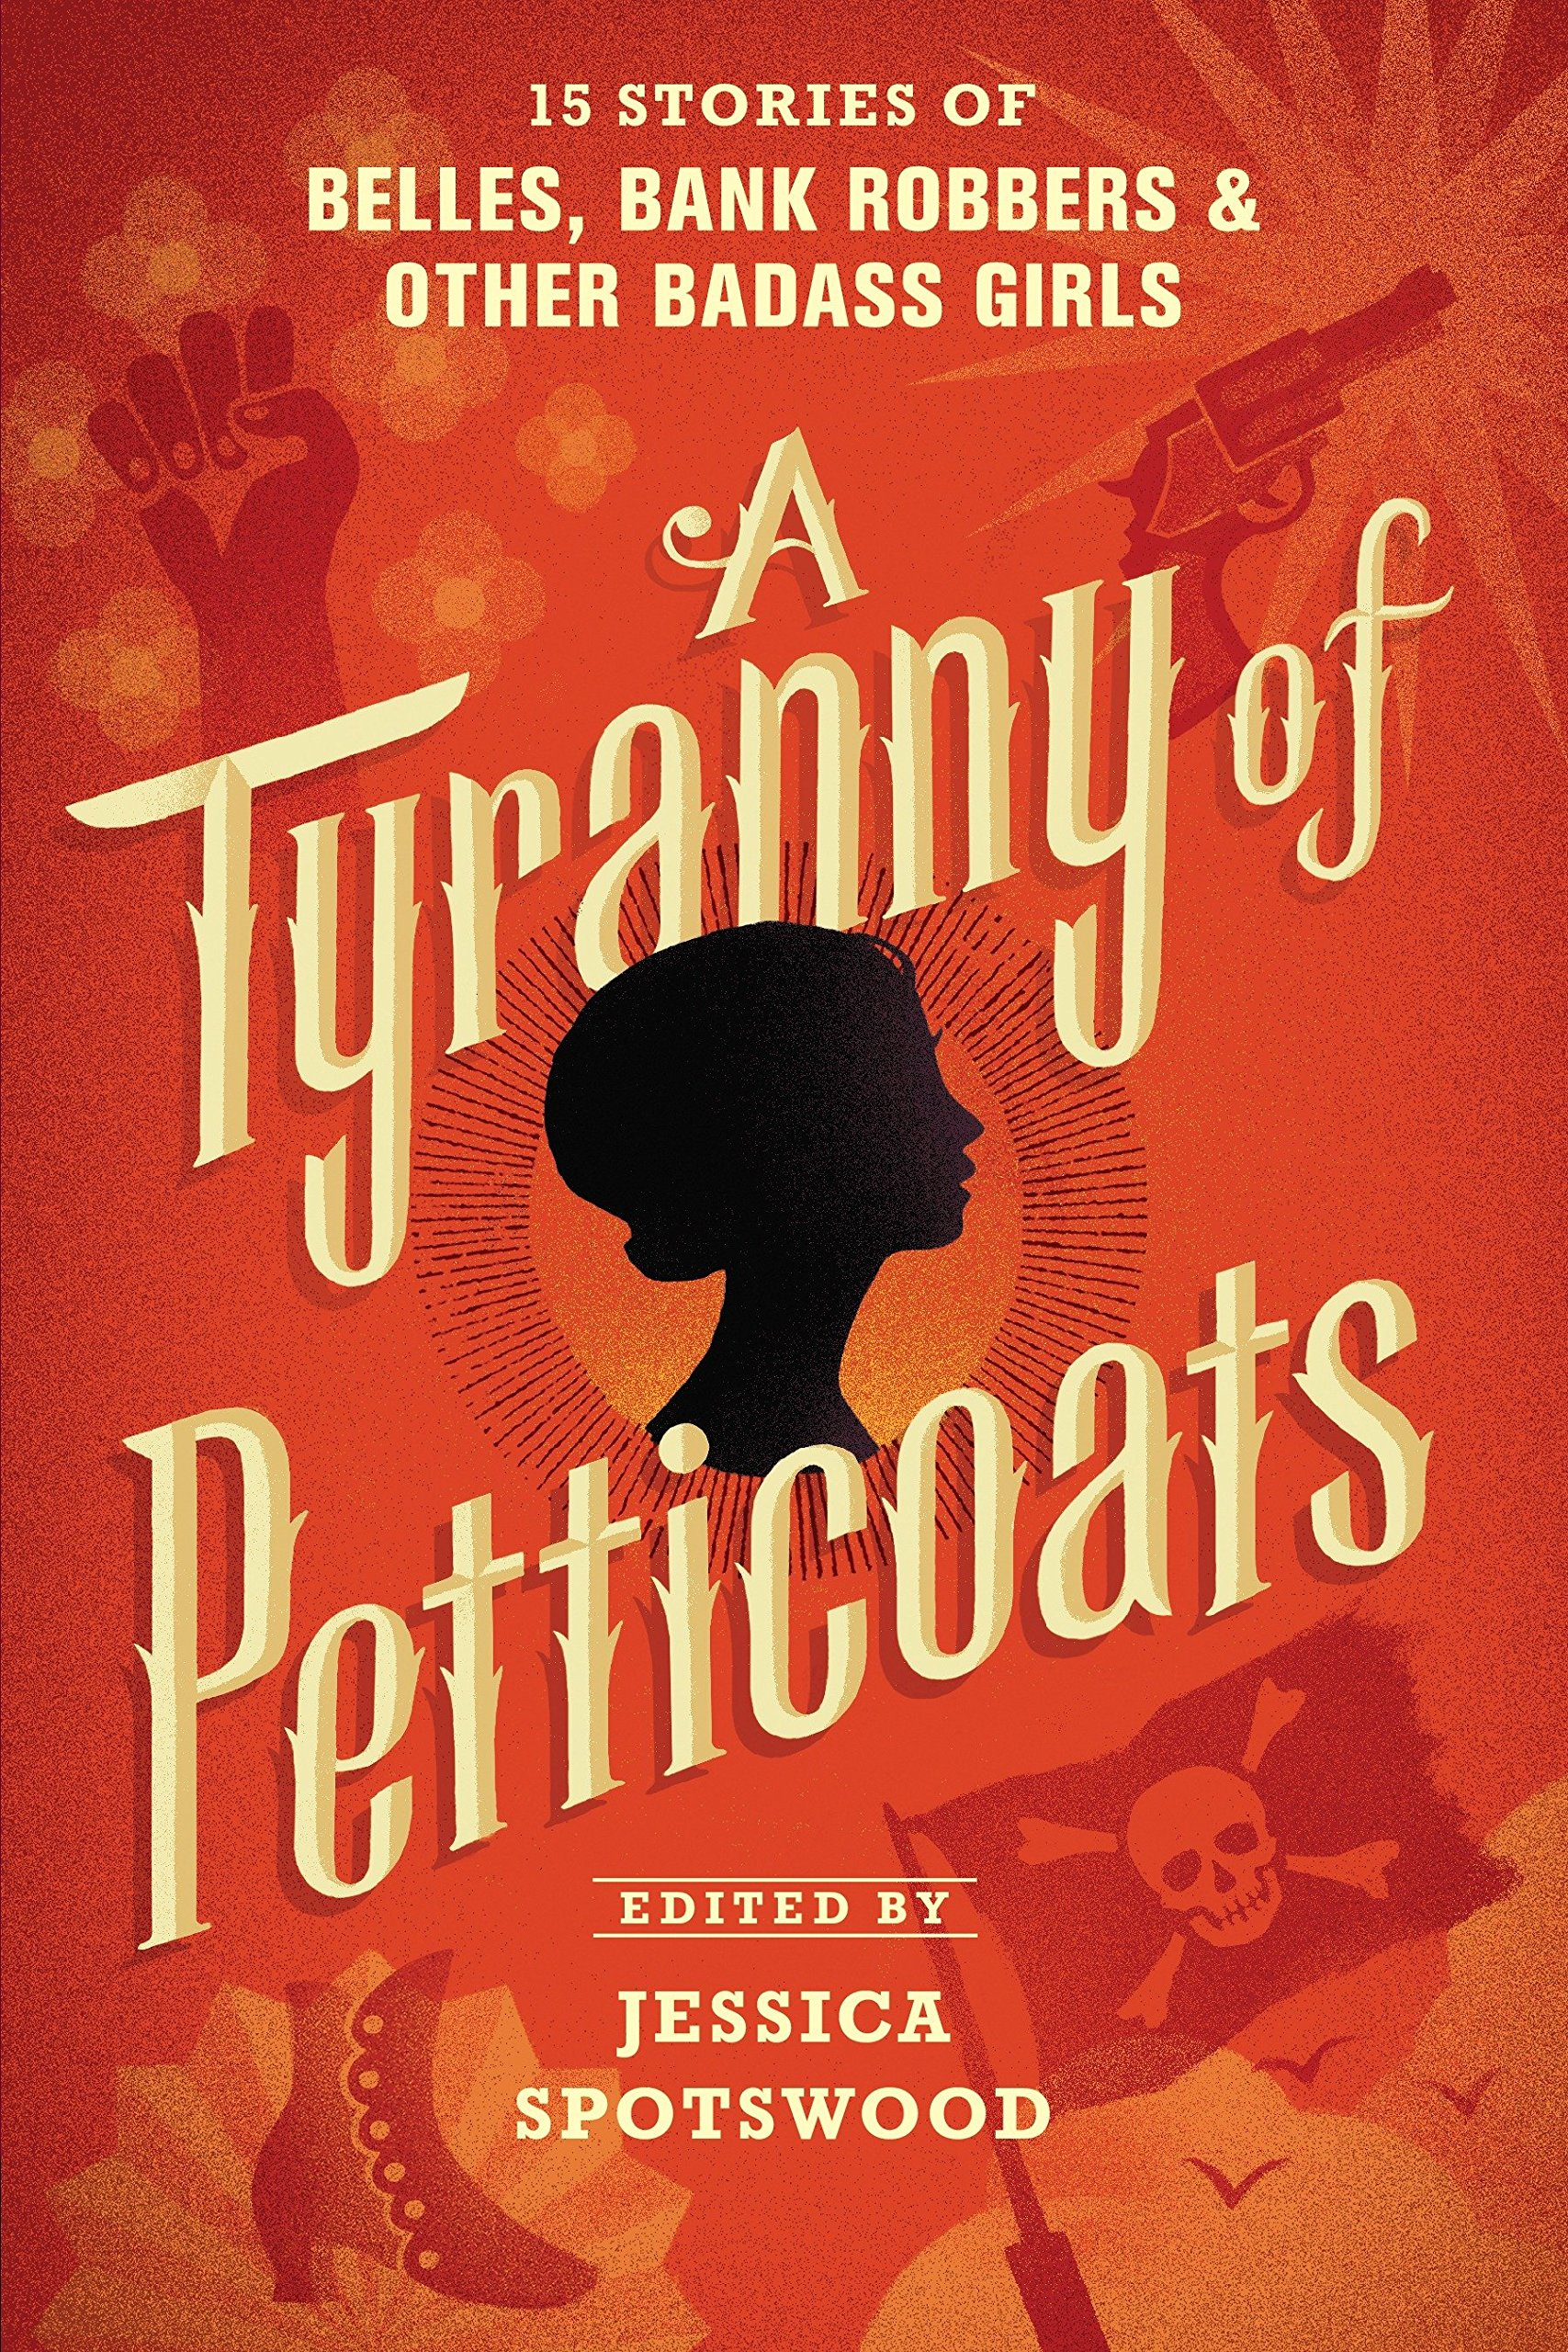 A Tyranny of Petticoats: 15 Stories of Belles, Bank Robbers & Other Badass Girls ebook